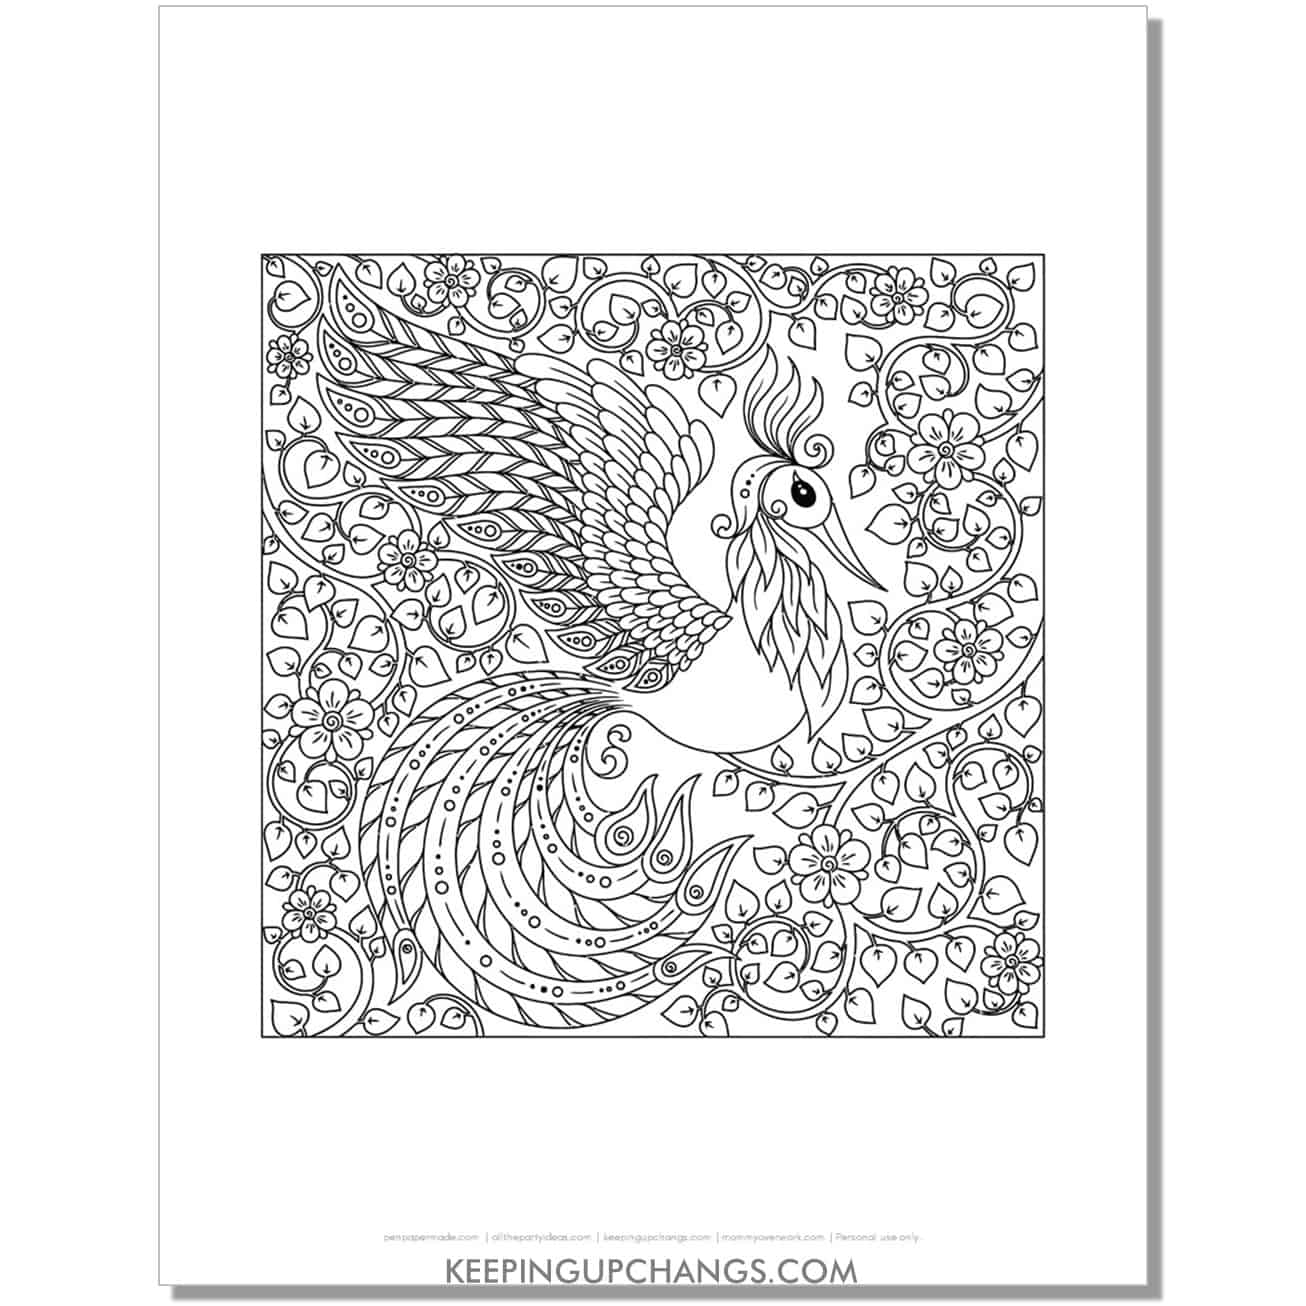 detailed flying peacock coloring page.